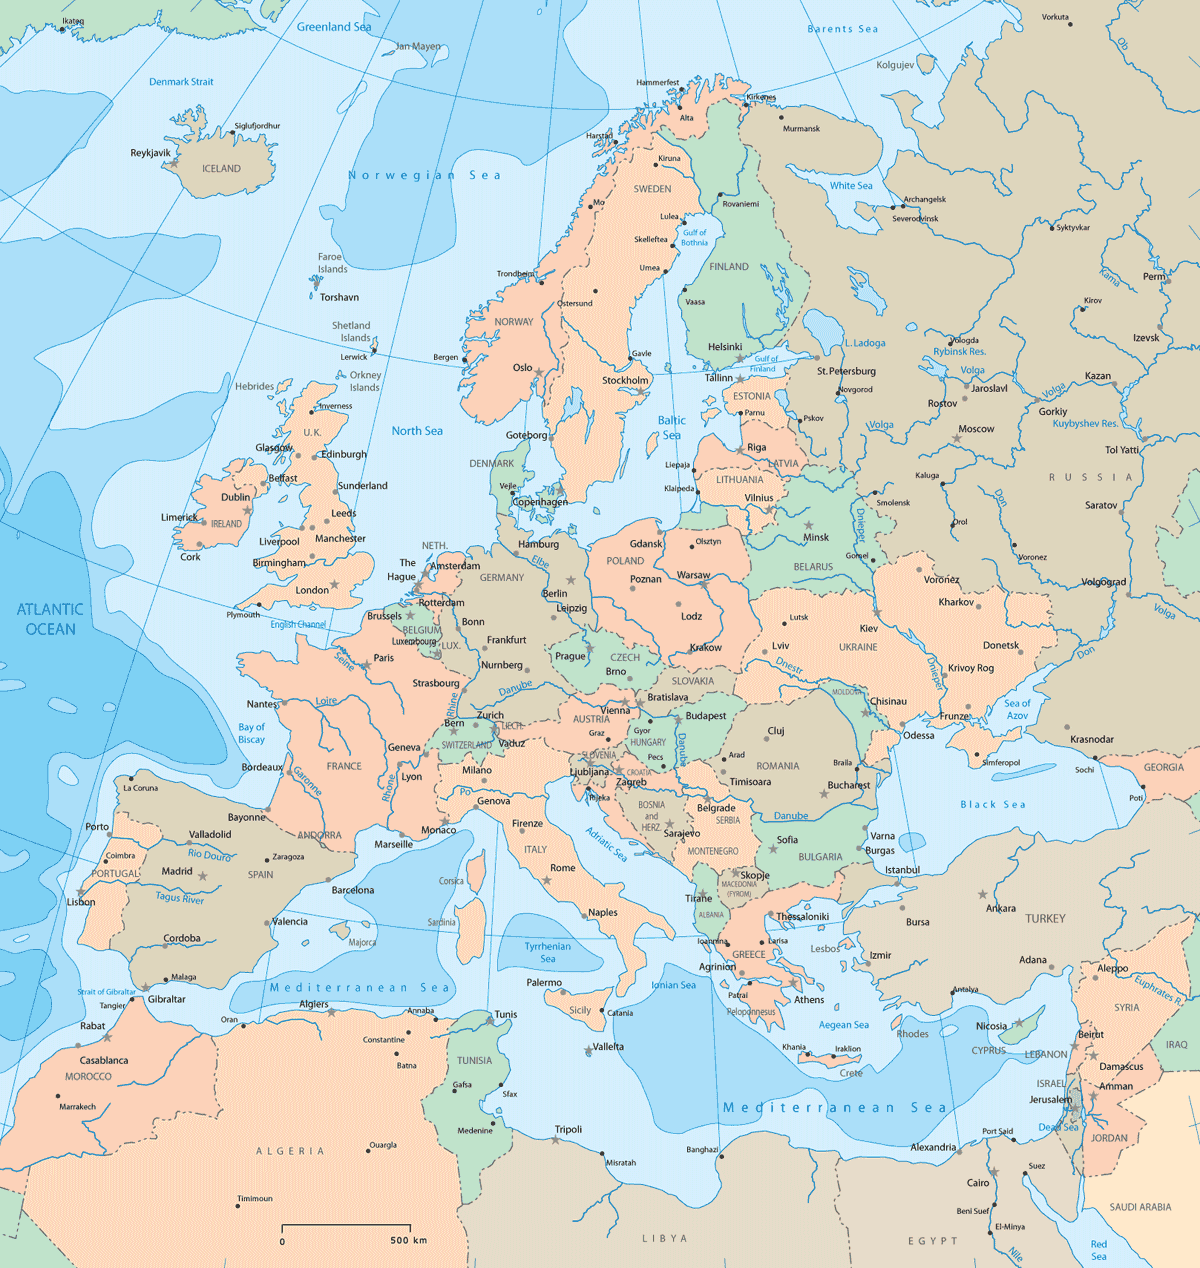 Europe Political Map 2